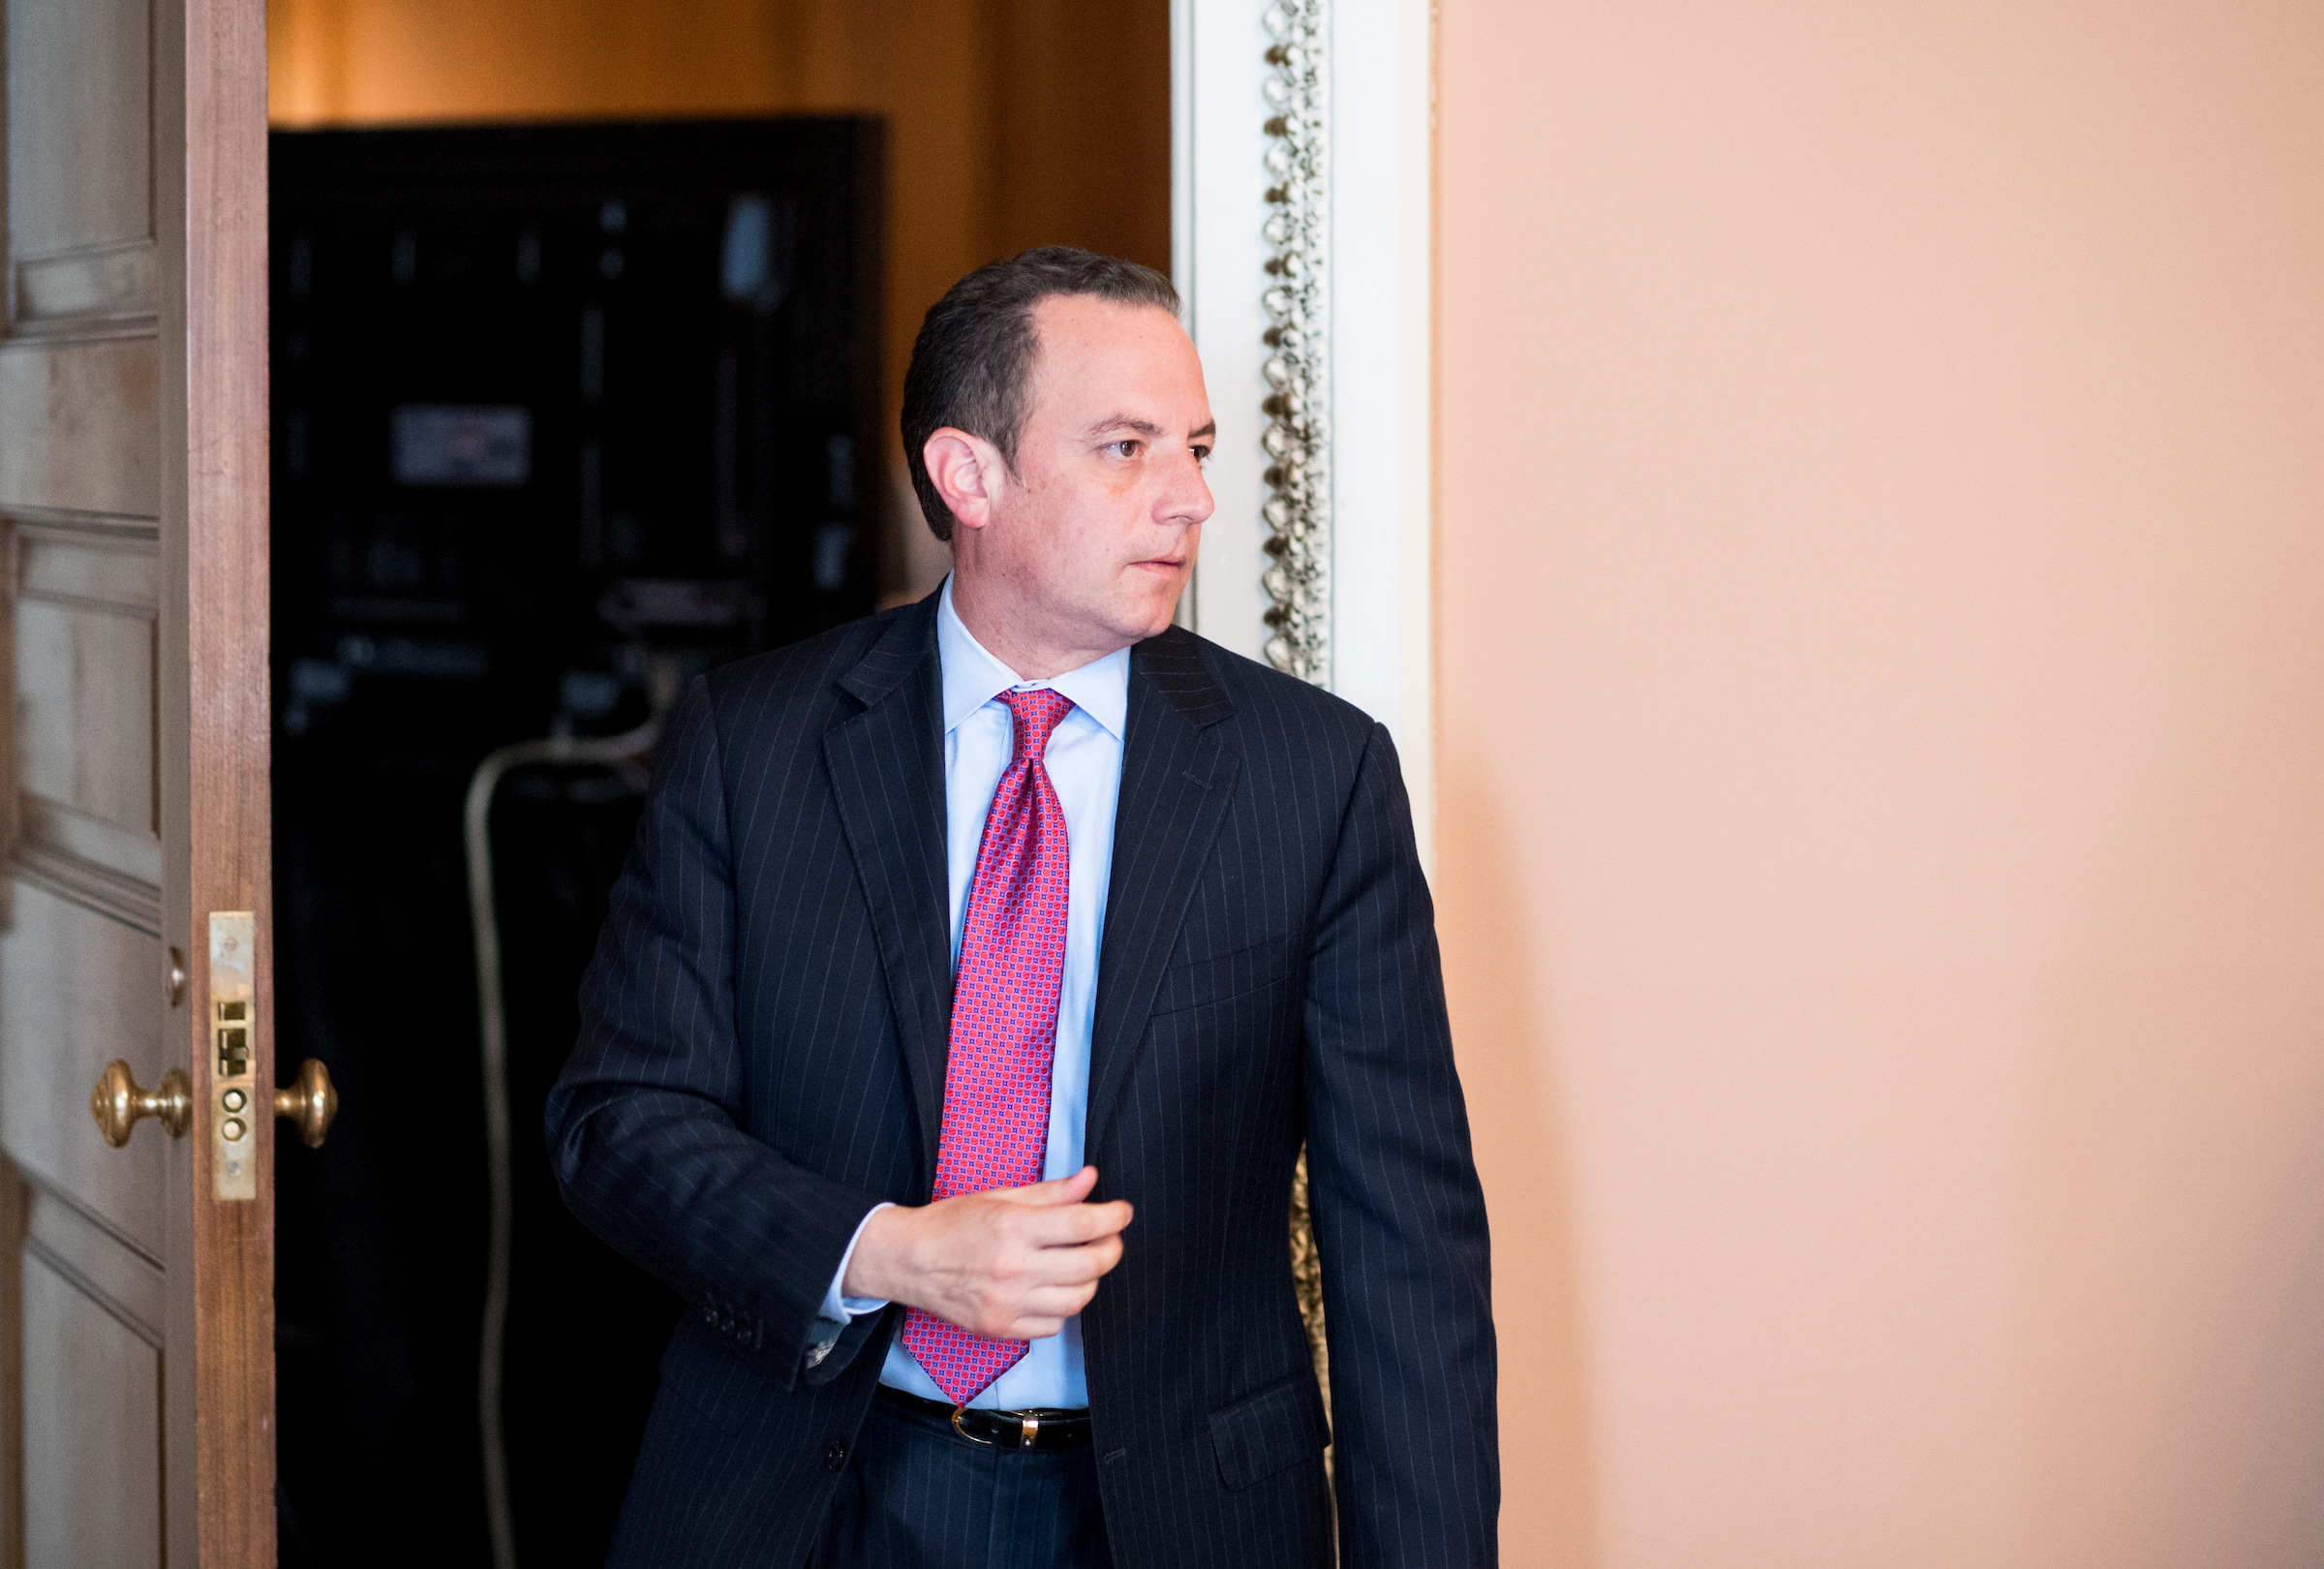 Reince Priebus, chief of staff for President Donald Trump, leaves the Senate Republicans' policy lunch in the Capitol on Tuesday. (Bill Clark/CQ Roll Call)